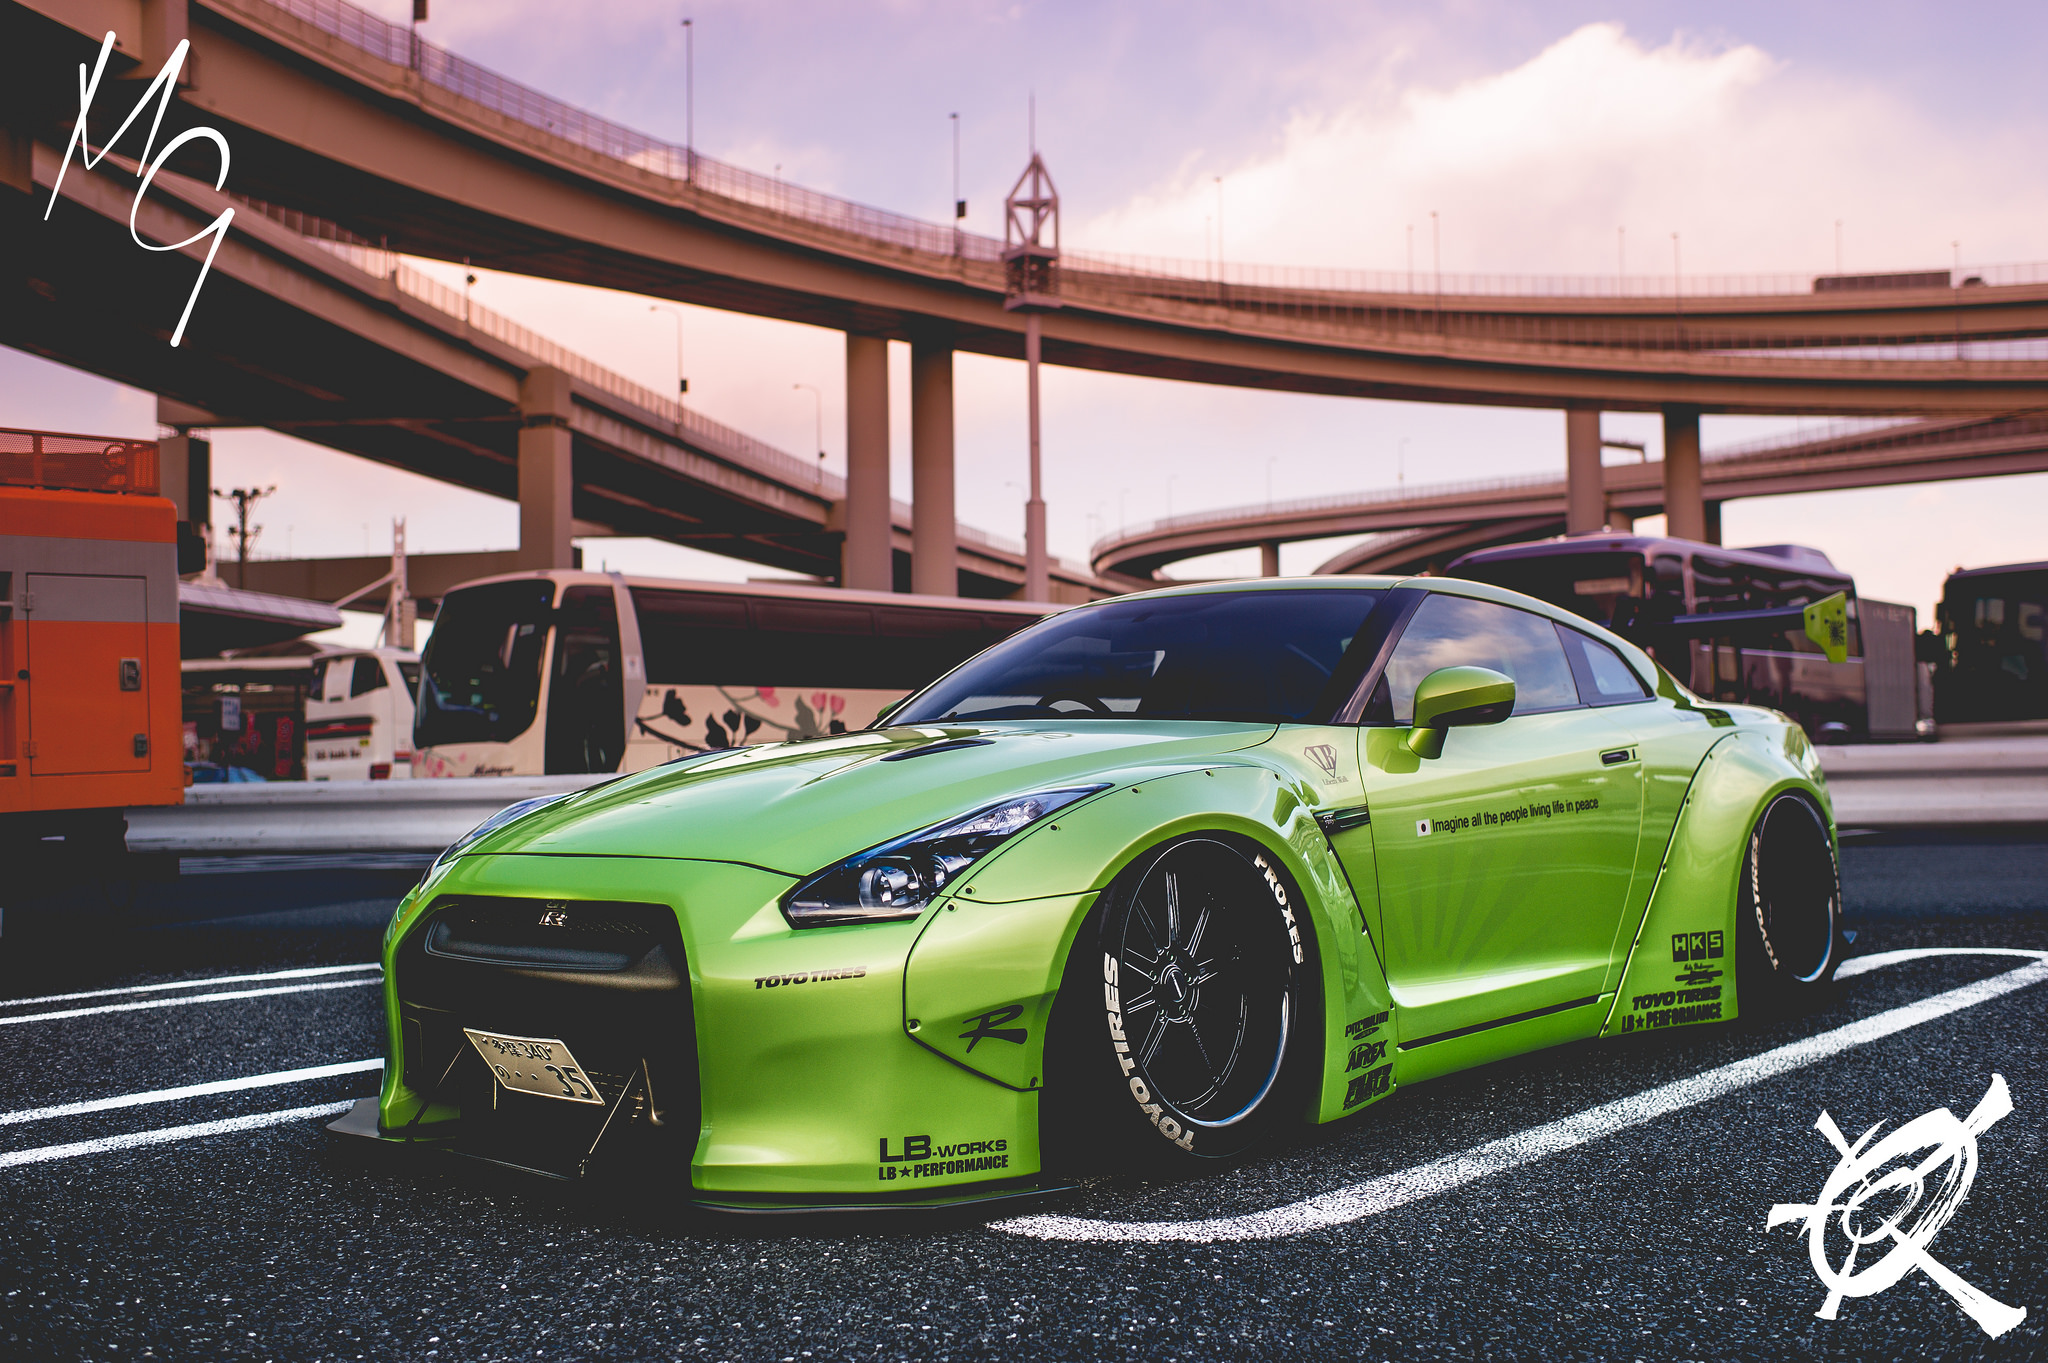 Garage Auto Nation Green Monster Stancenation Form Gt Function